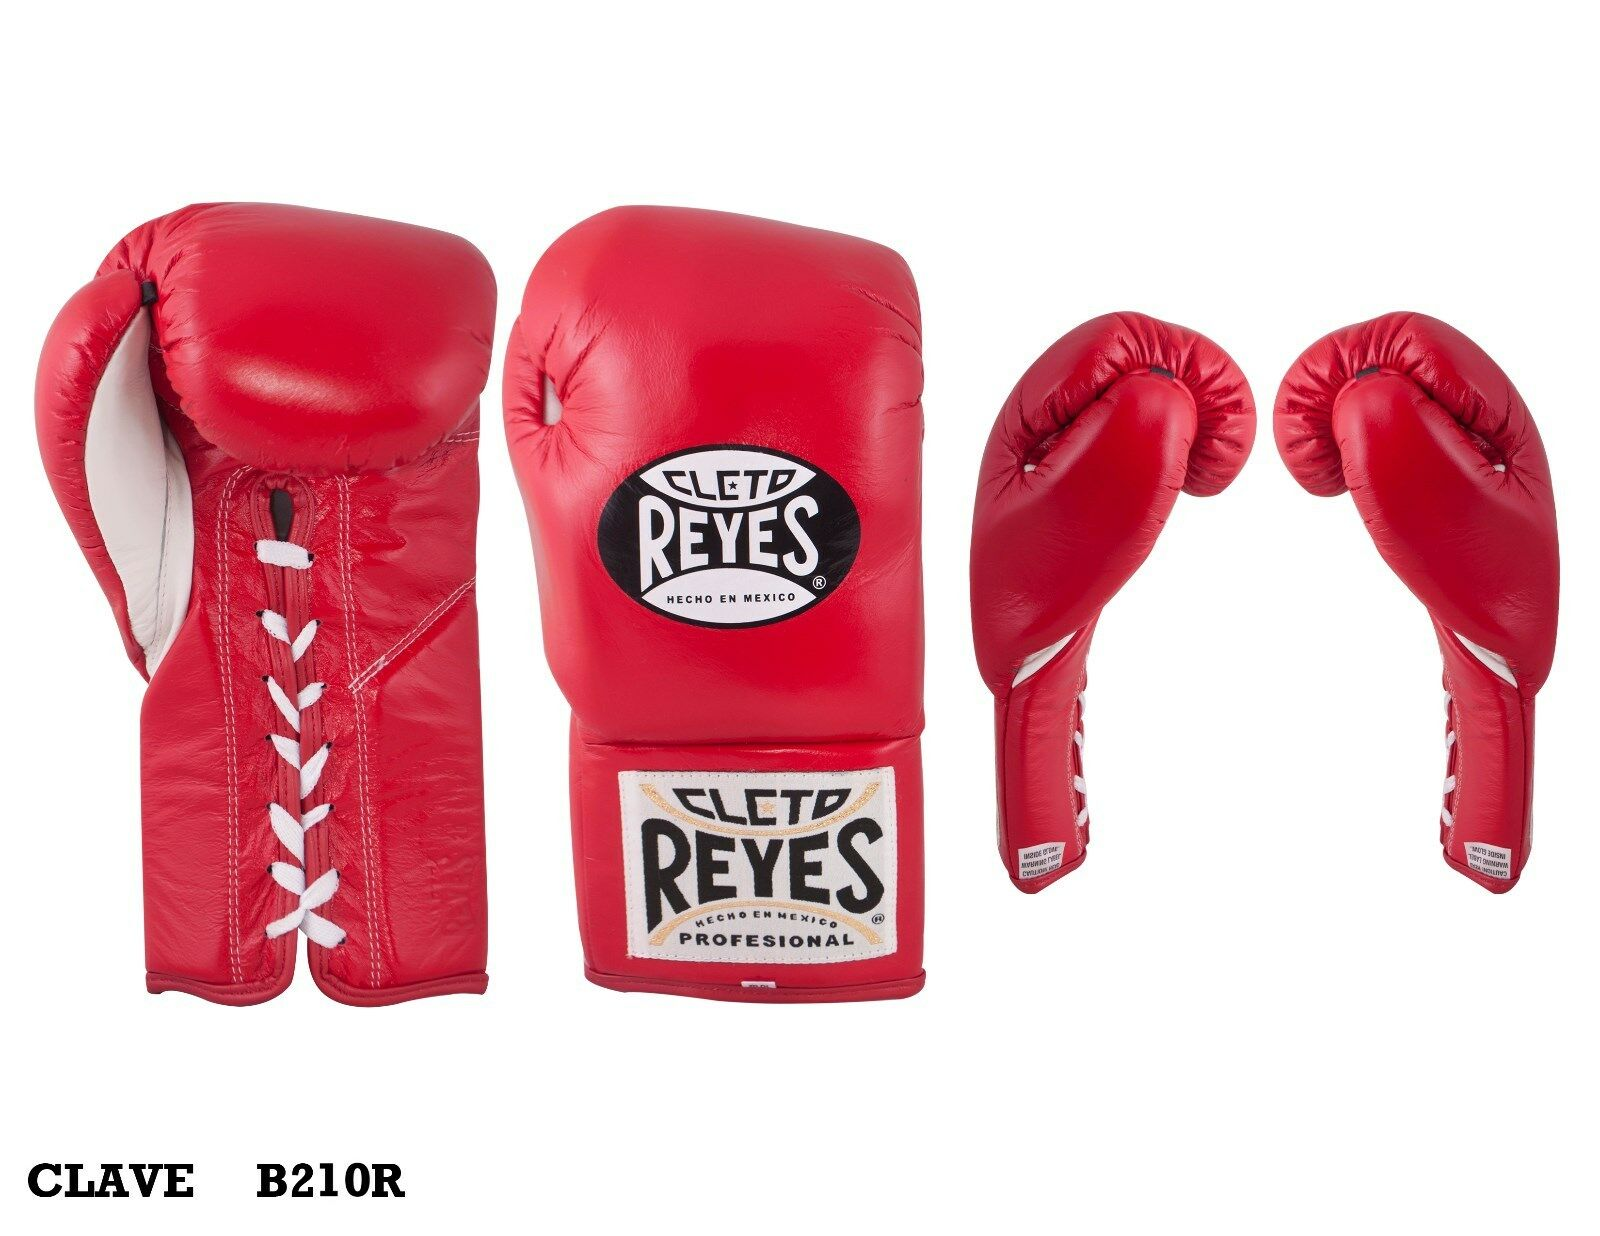 Authentic gloves Cleto Reyes ROT Leder traditional 10oz contest gloves Authentic d17d6b